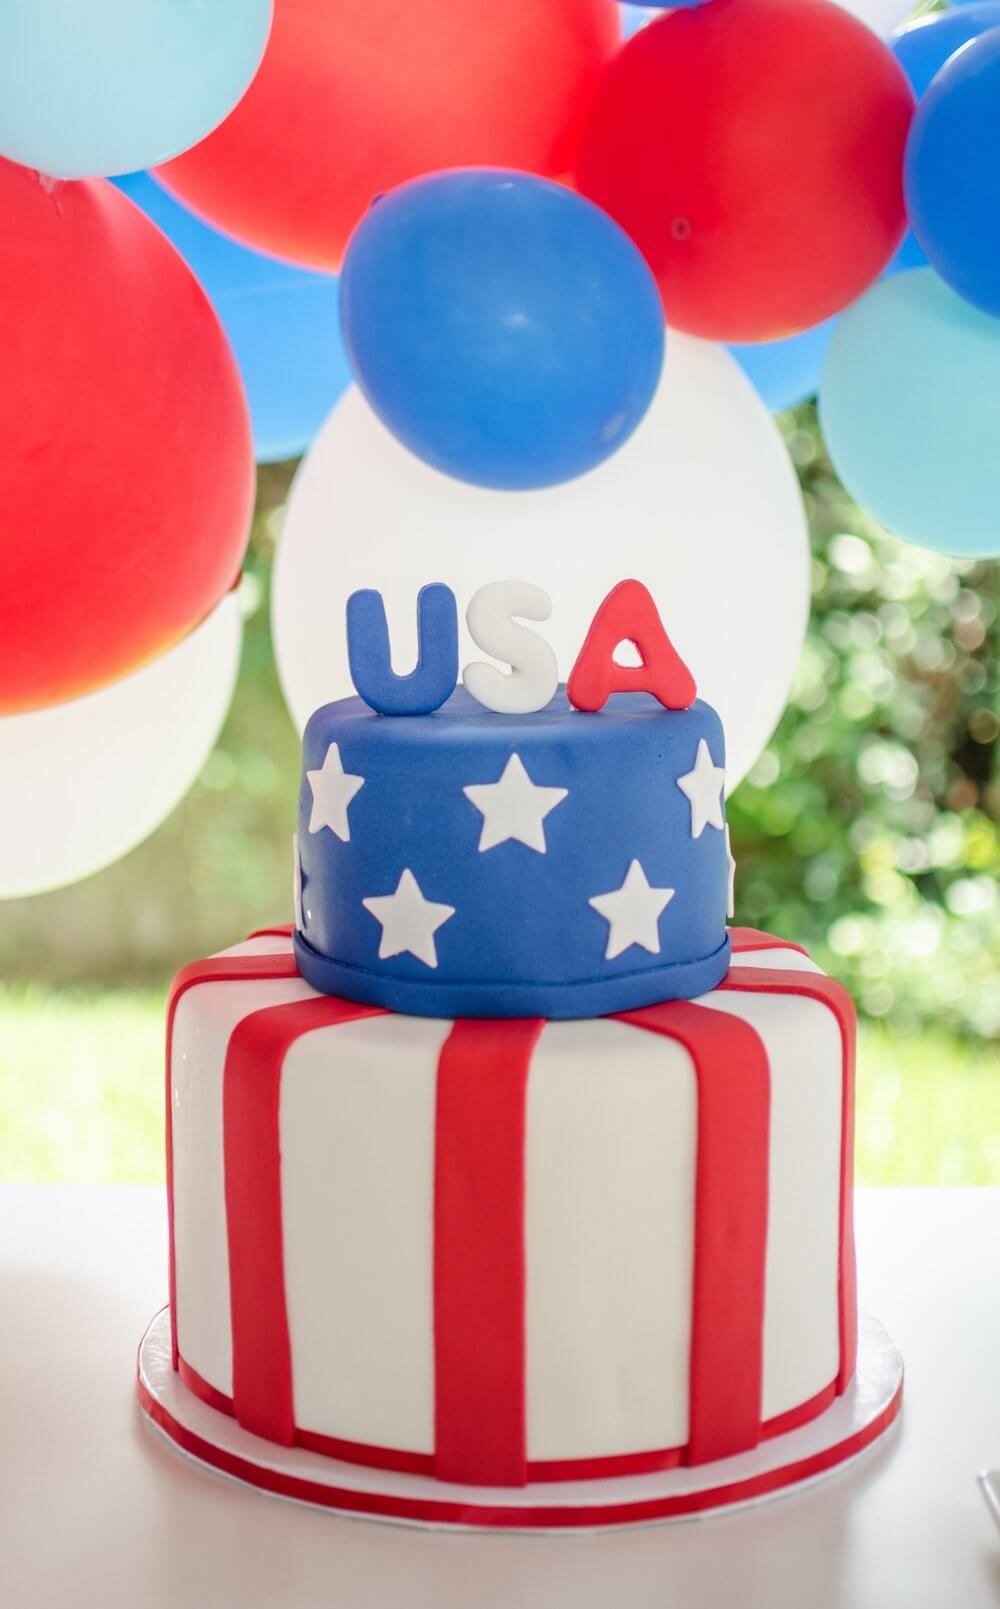 Beautiful handmade red, white, and blue patriotic fondant cake created by Sweet Carousel Cakes.